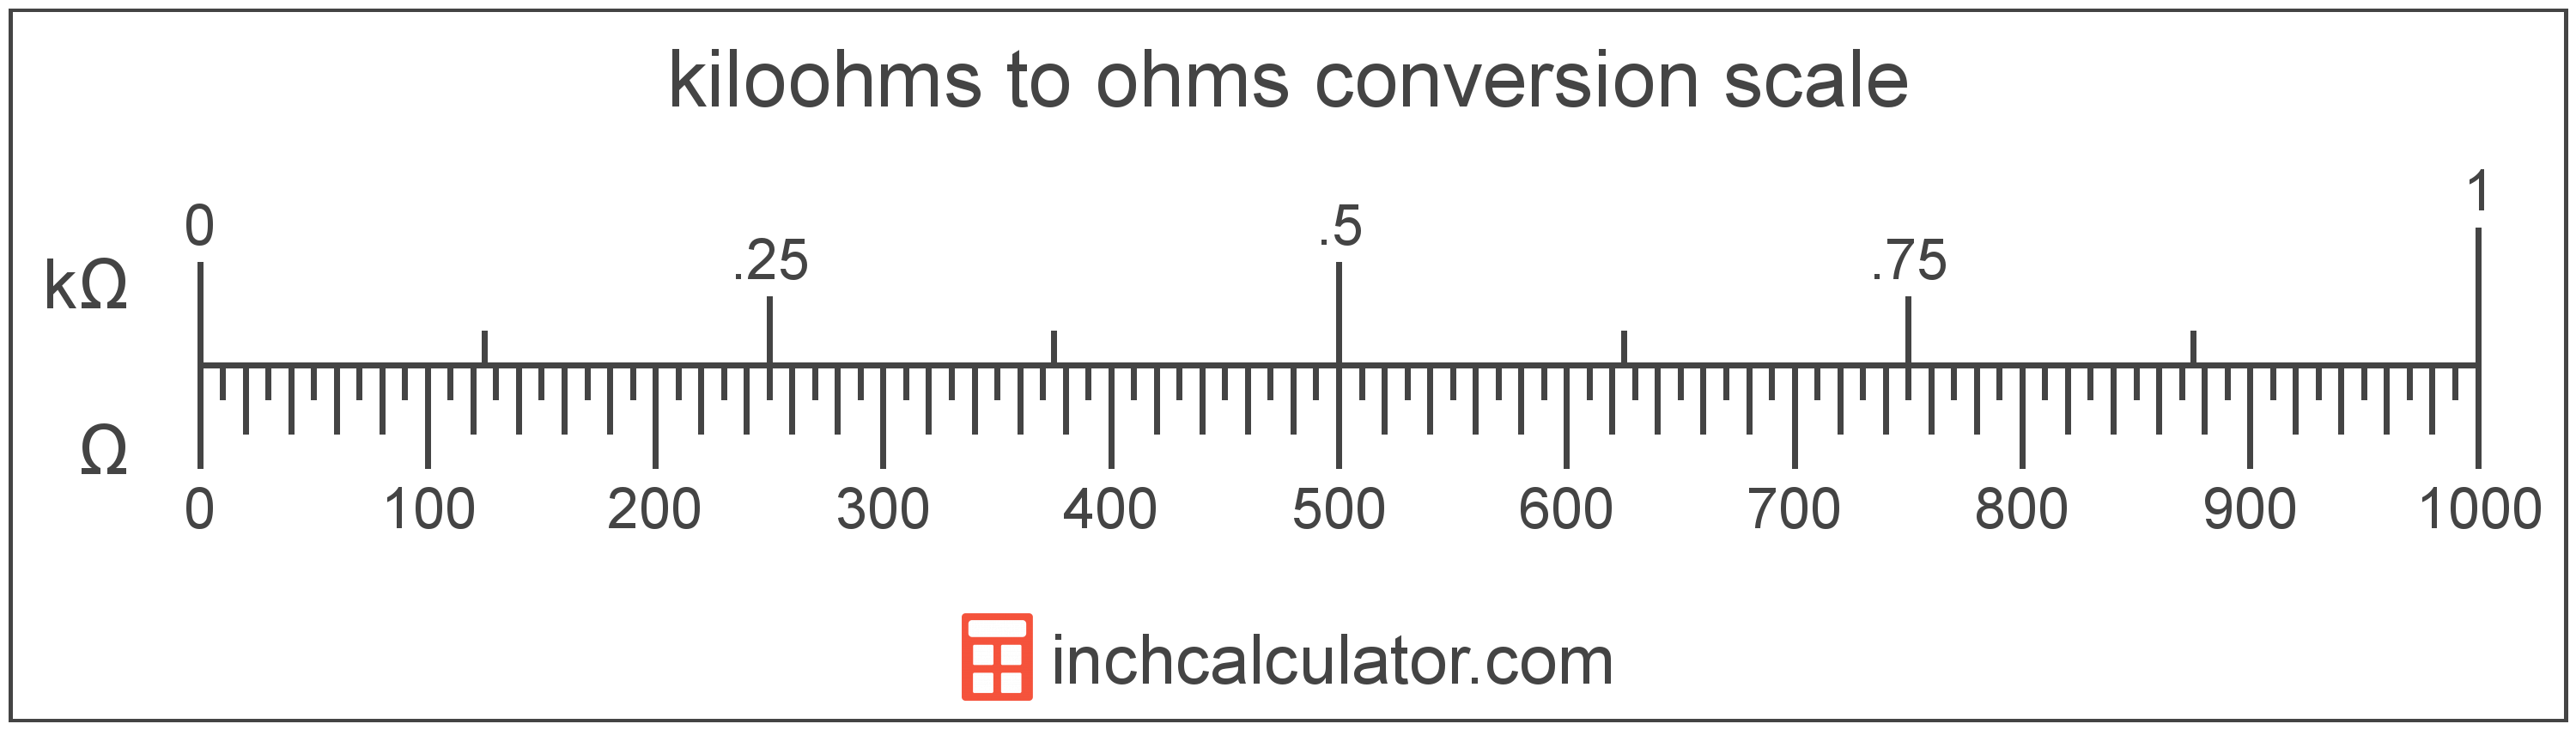 conversion scale showing kiloohms and equivalent ohms electrical resistance values